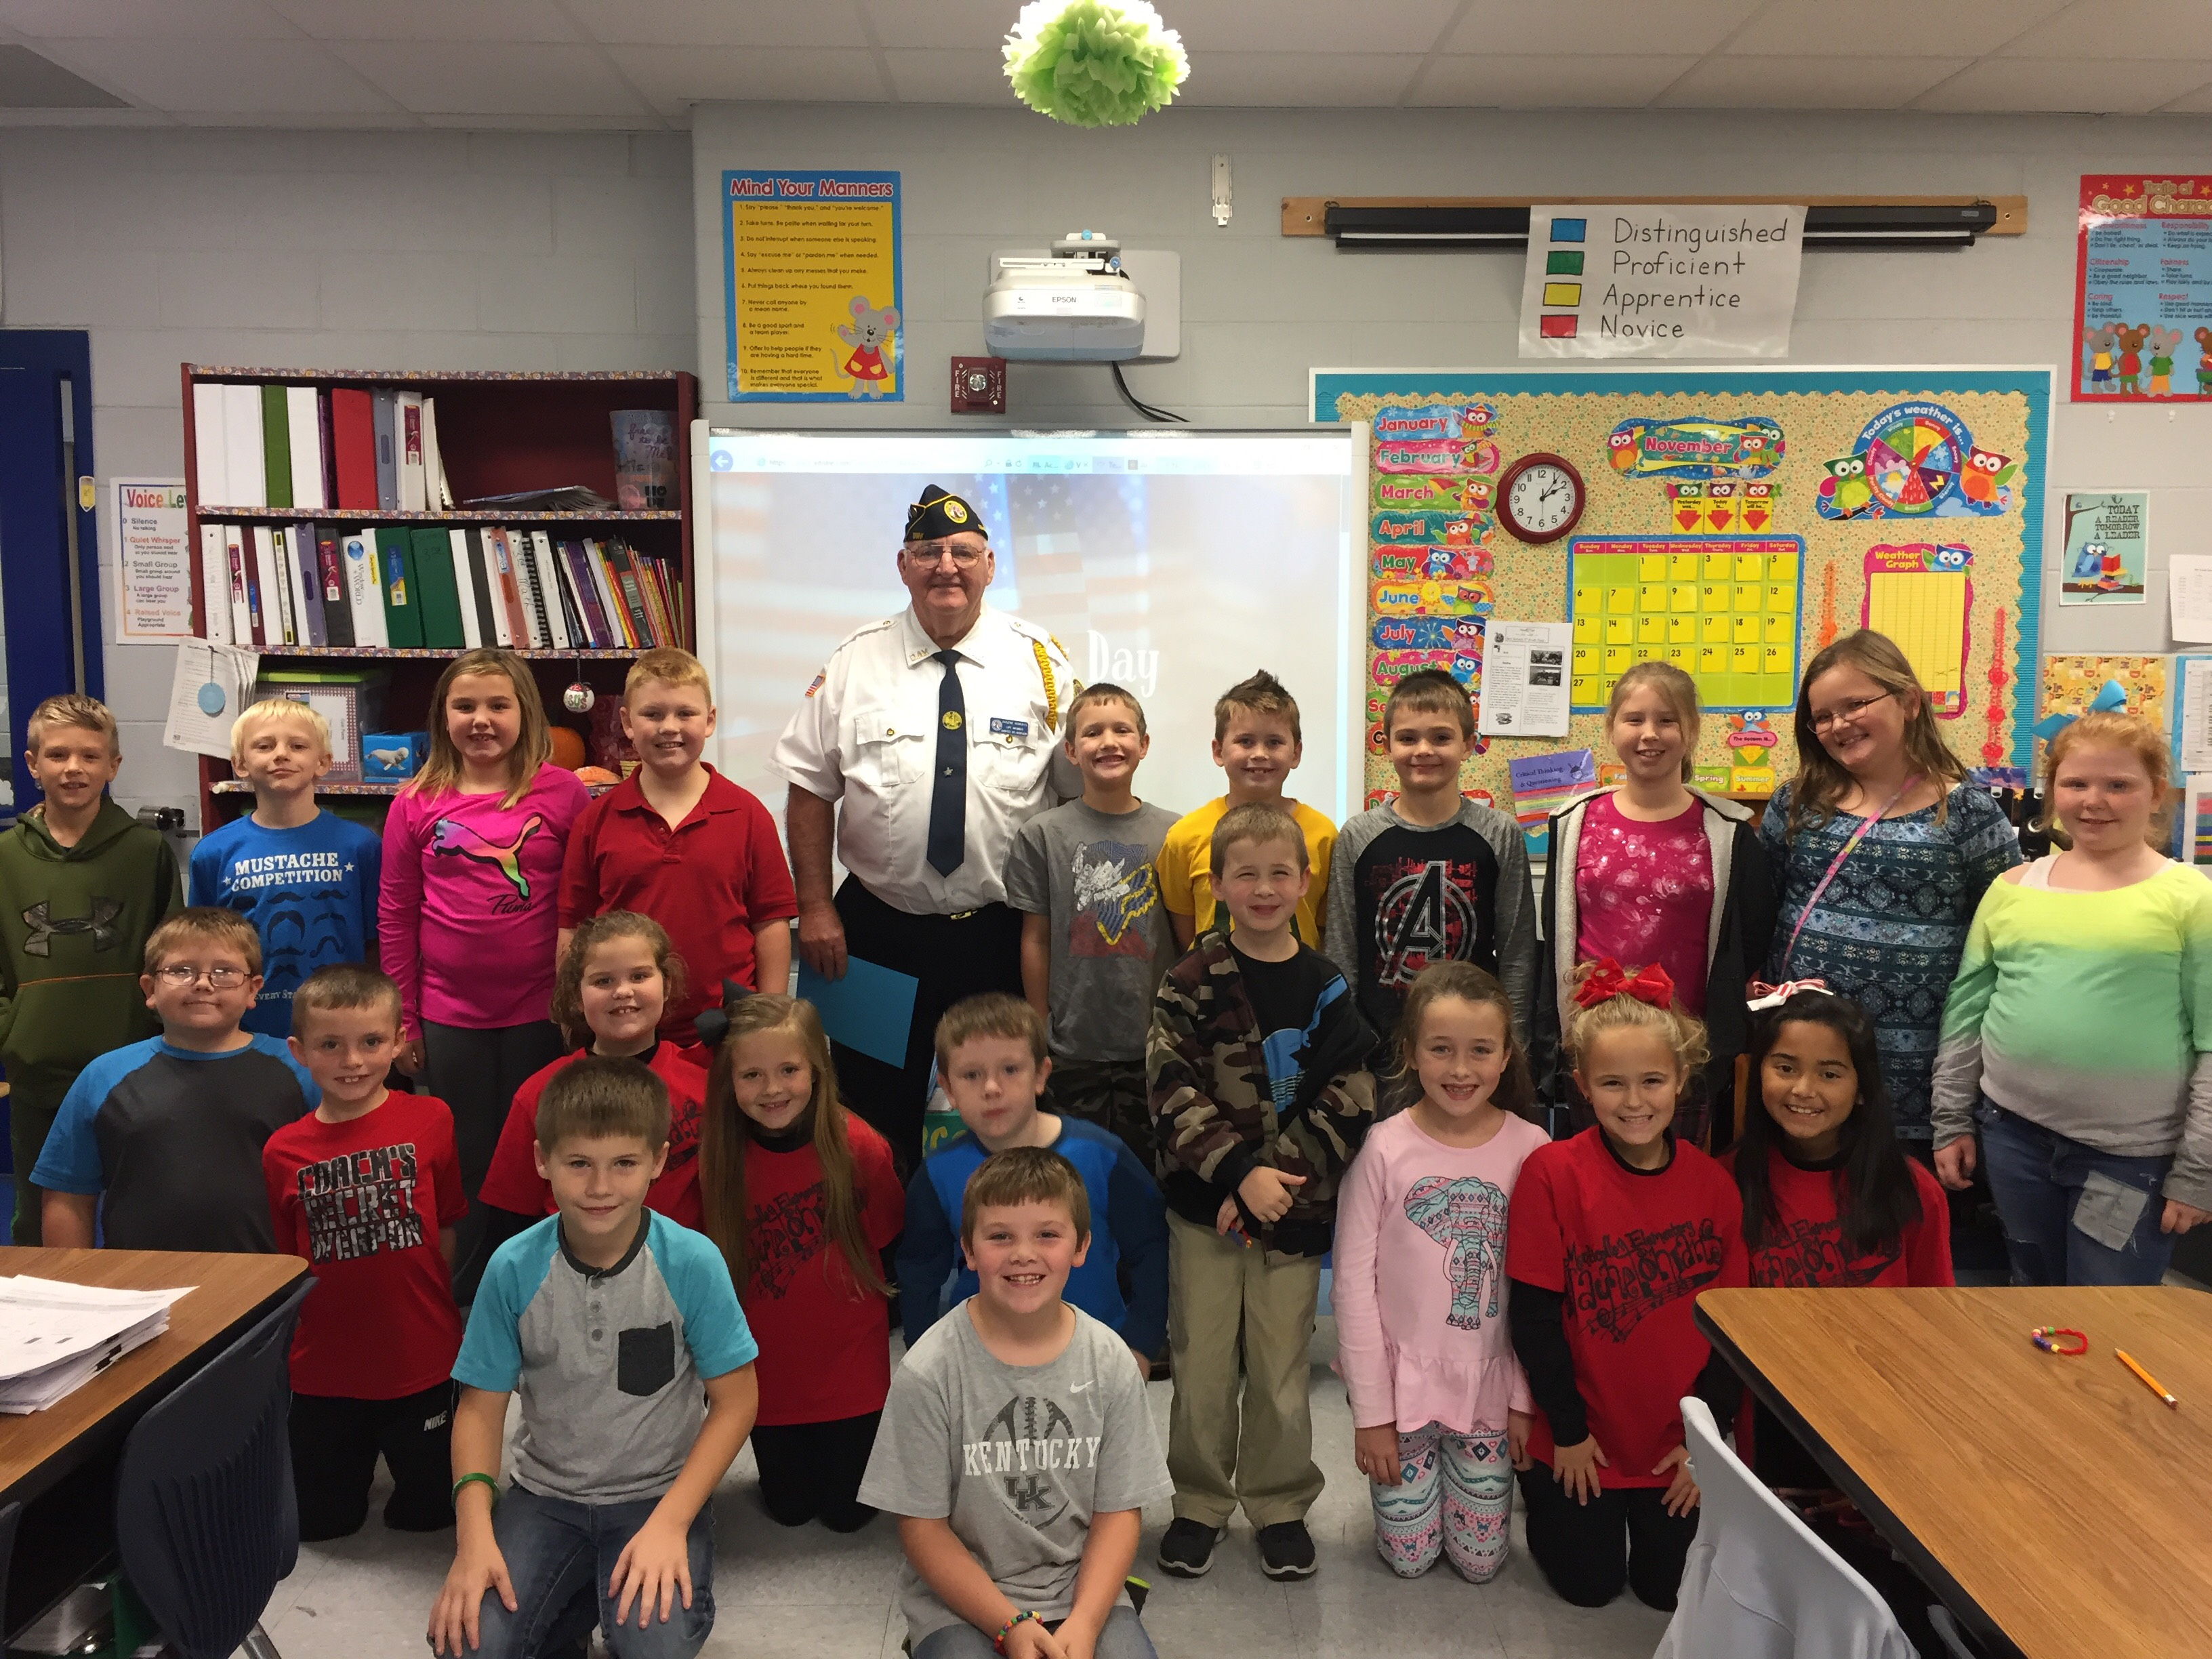 The students appreciated learning about his experience as a veteran